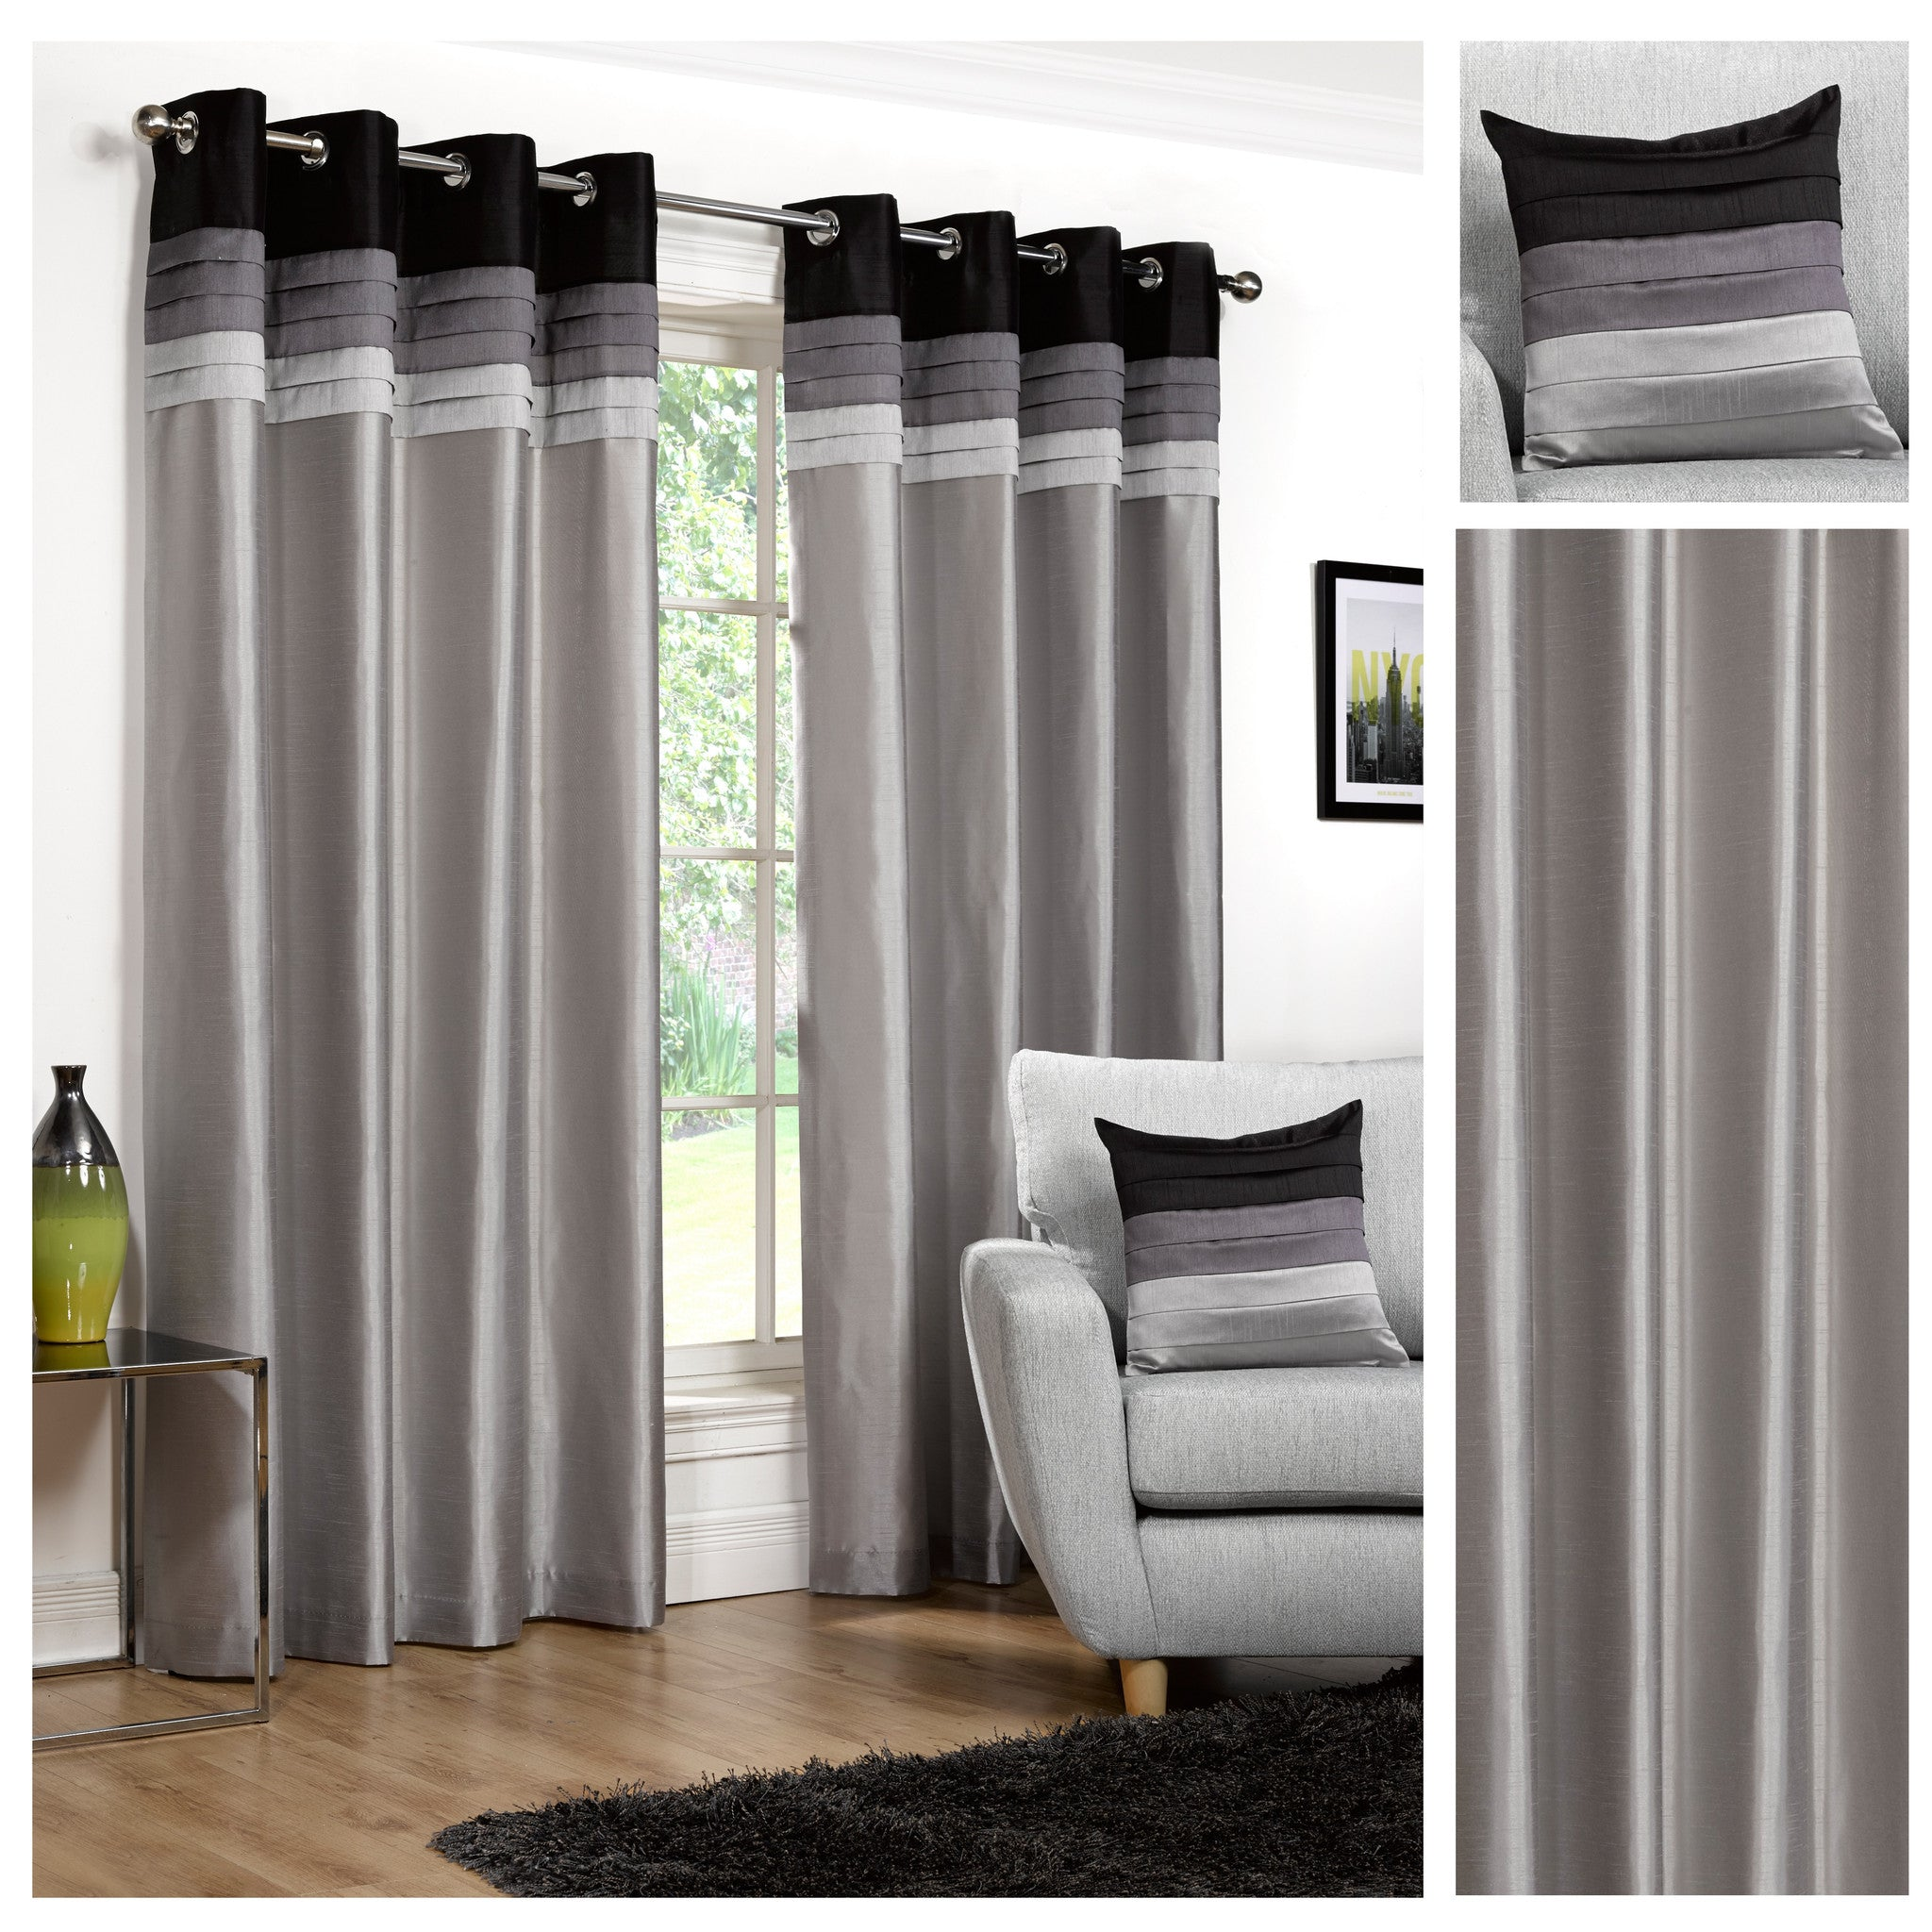 2019 year looks- Silver Black curtains pictures